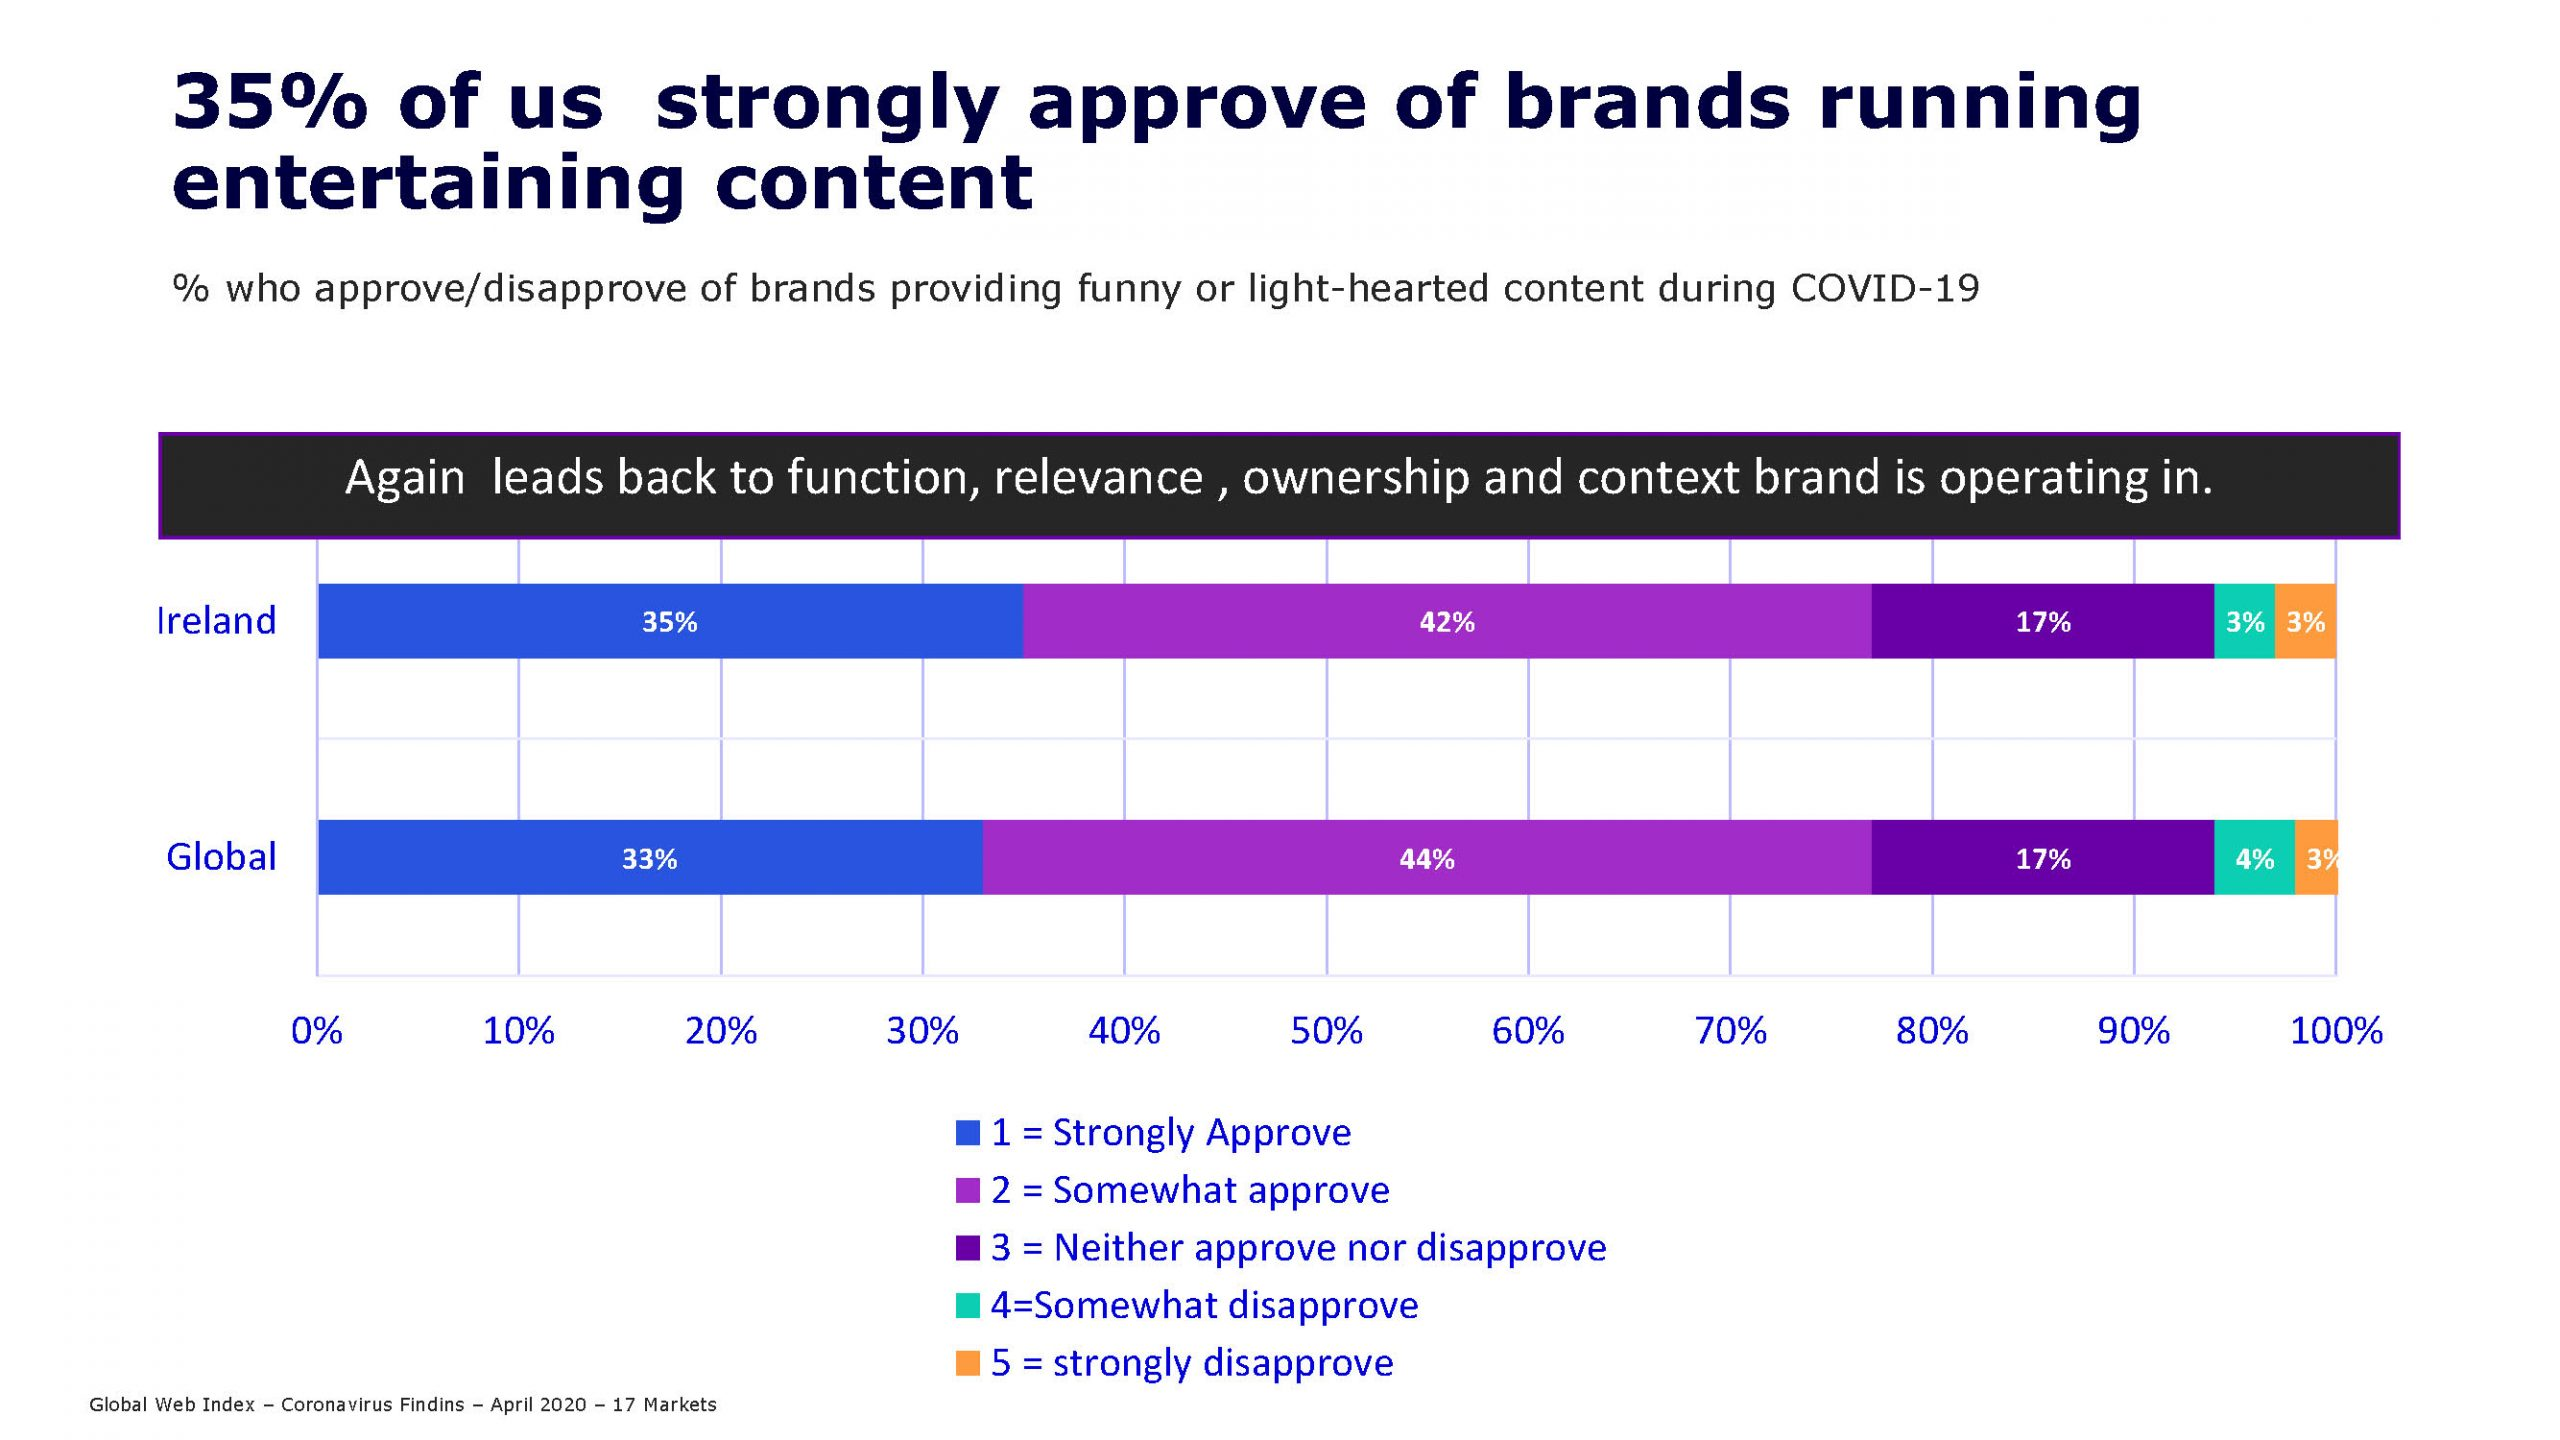 35% of us strongly approve of brands running entertaining content